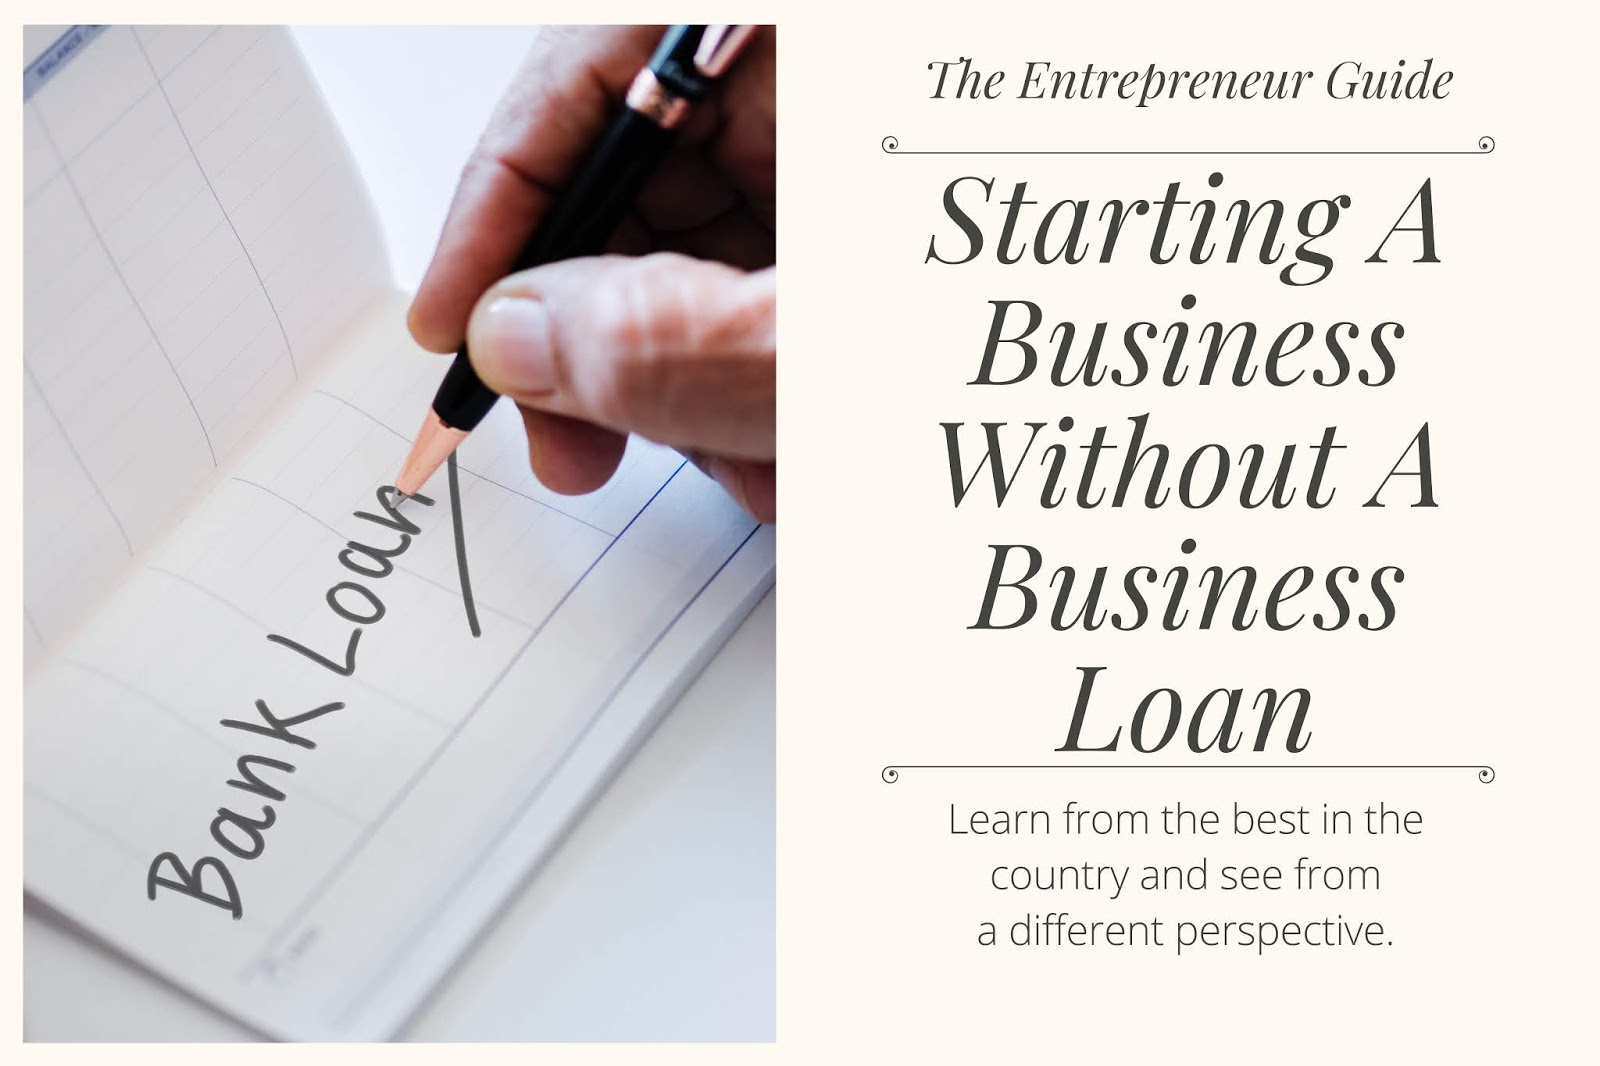 Starting A Business Without A Business Loan – 3 Ways